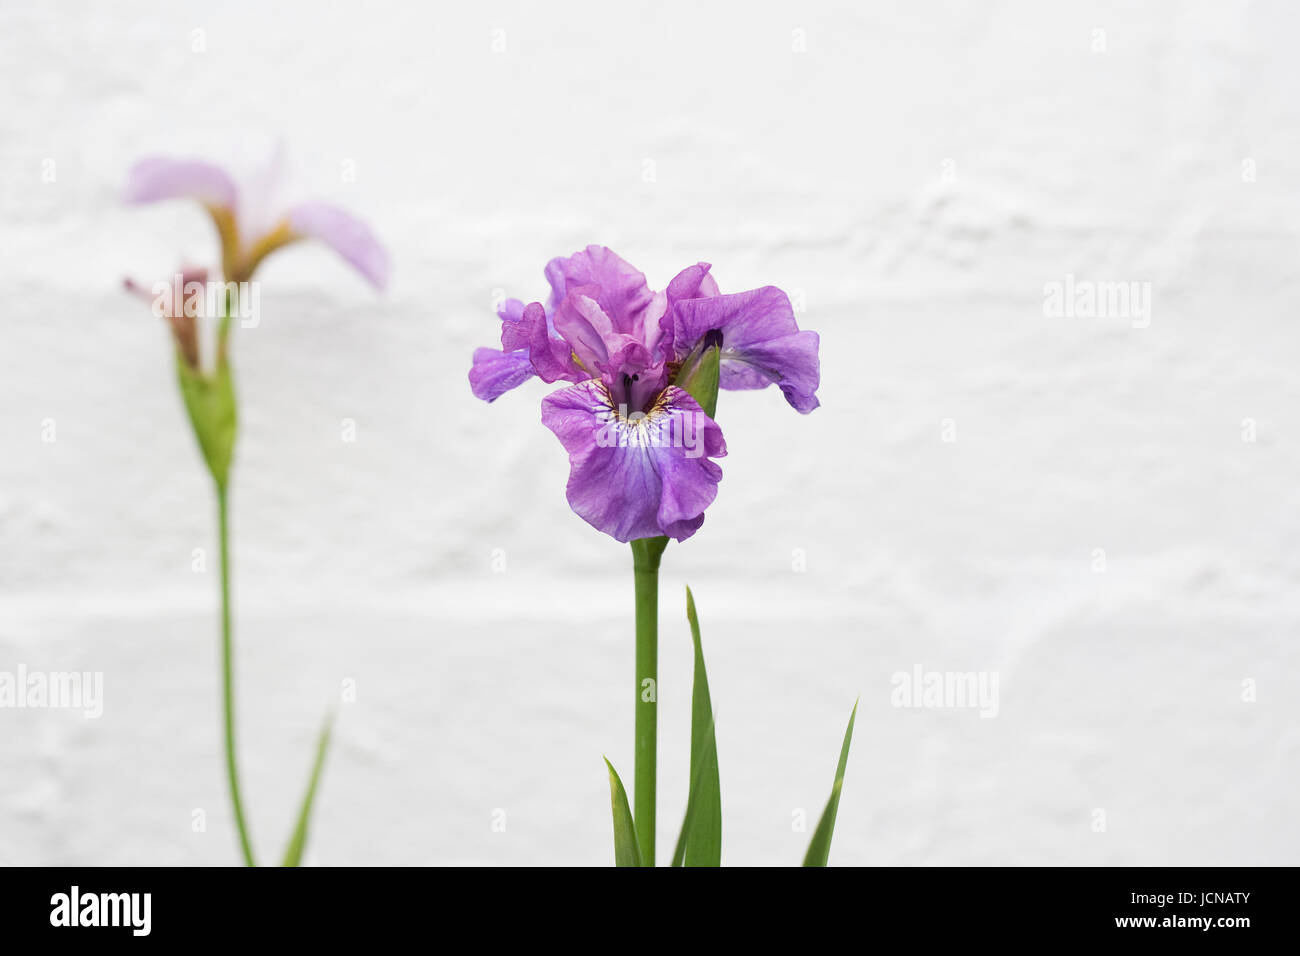 Iris sibirica 'Temper Tantrum' against a white wall. - Stock Image